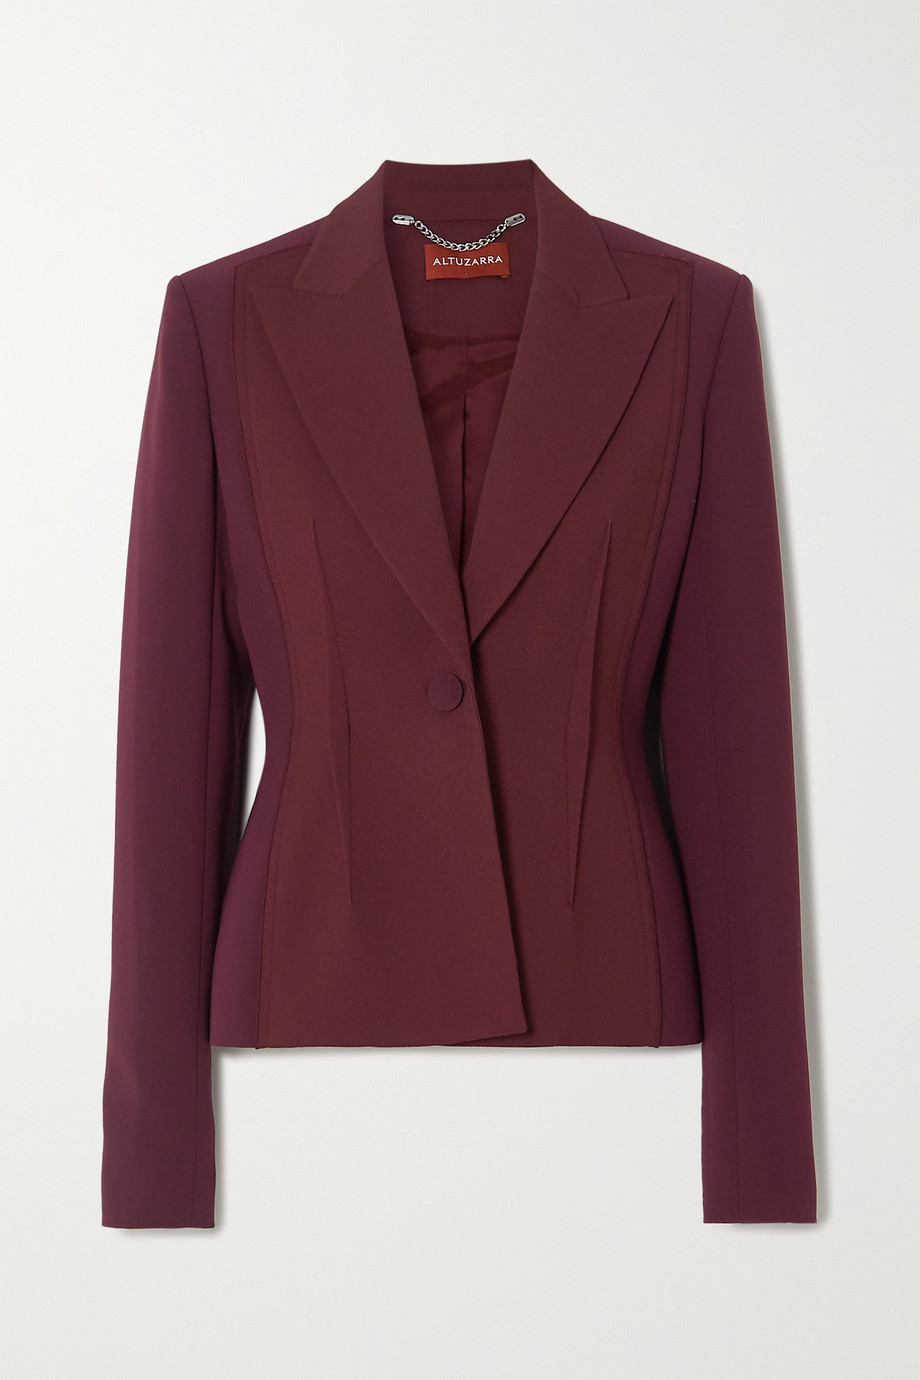 Altuzarra Eleanor wool-blend crepe blazer